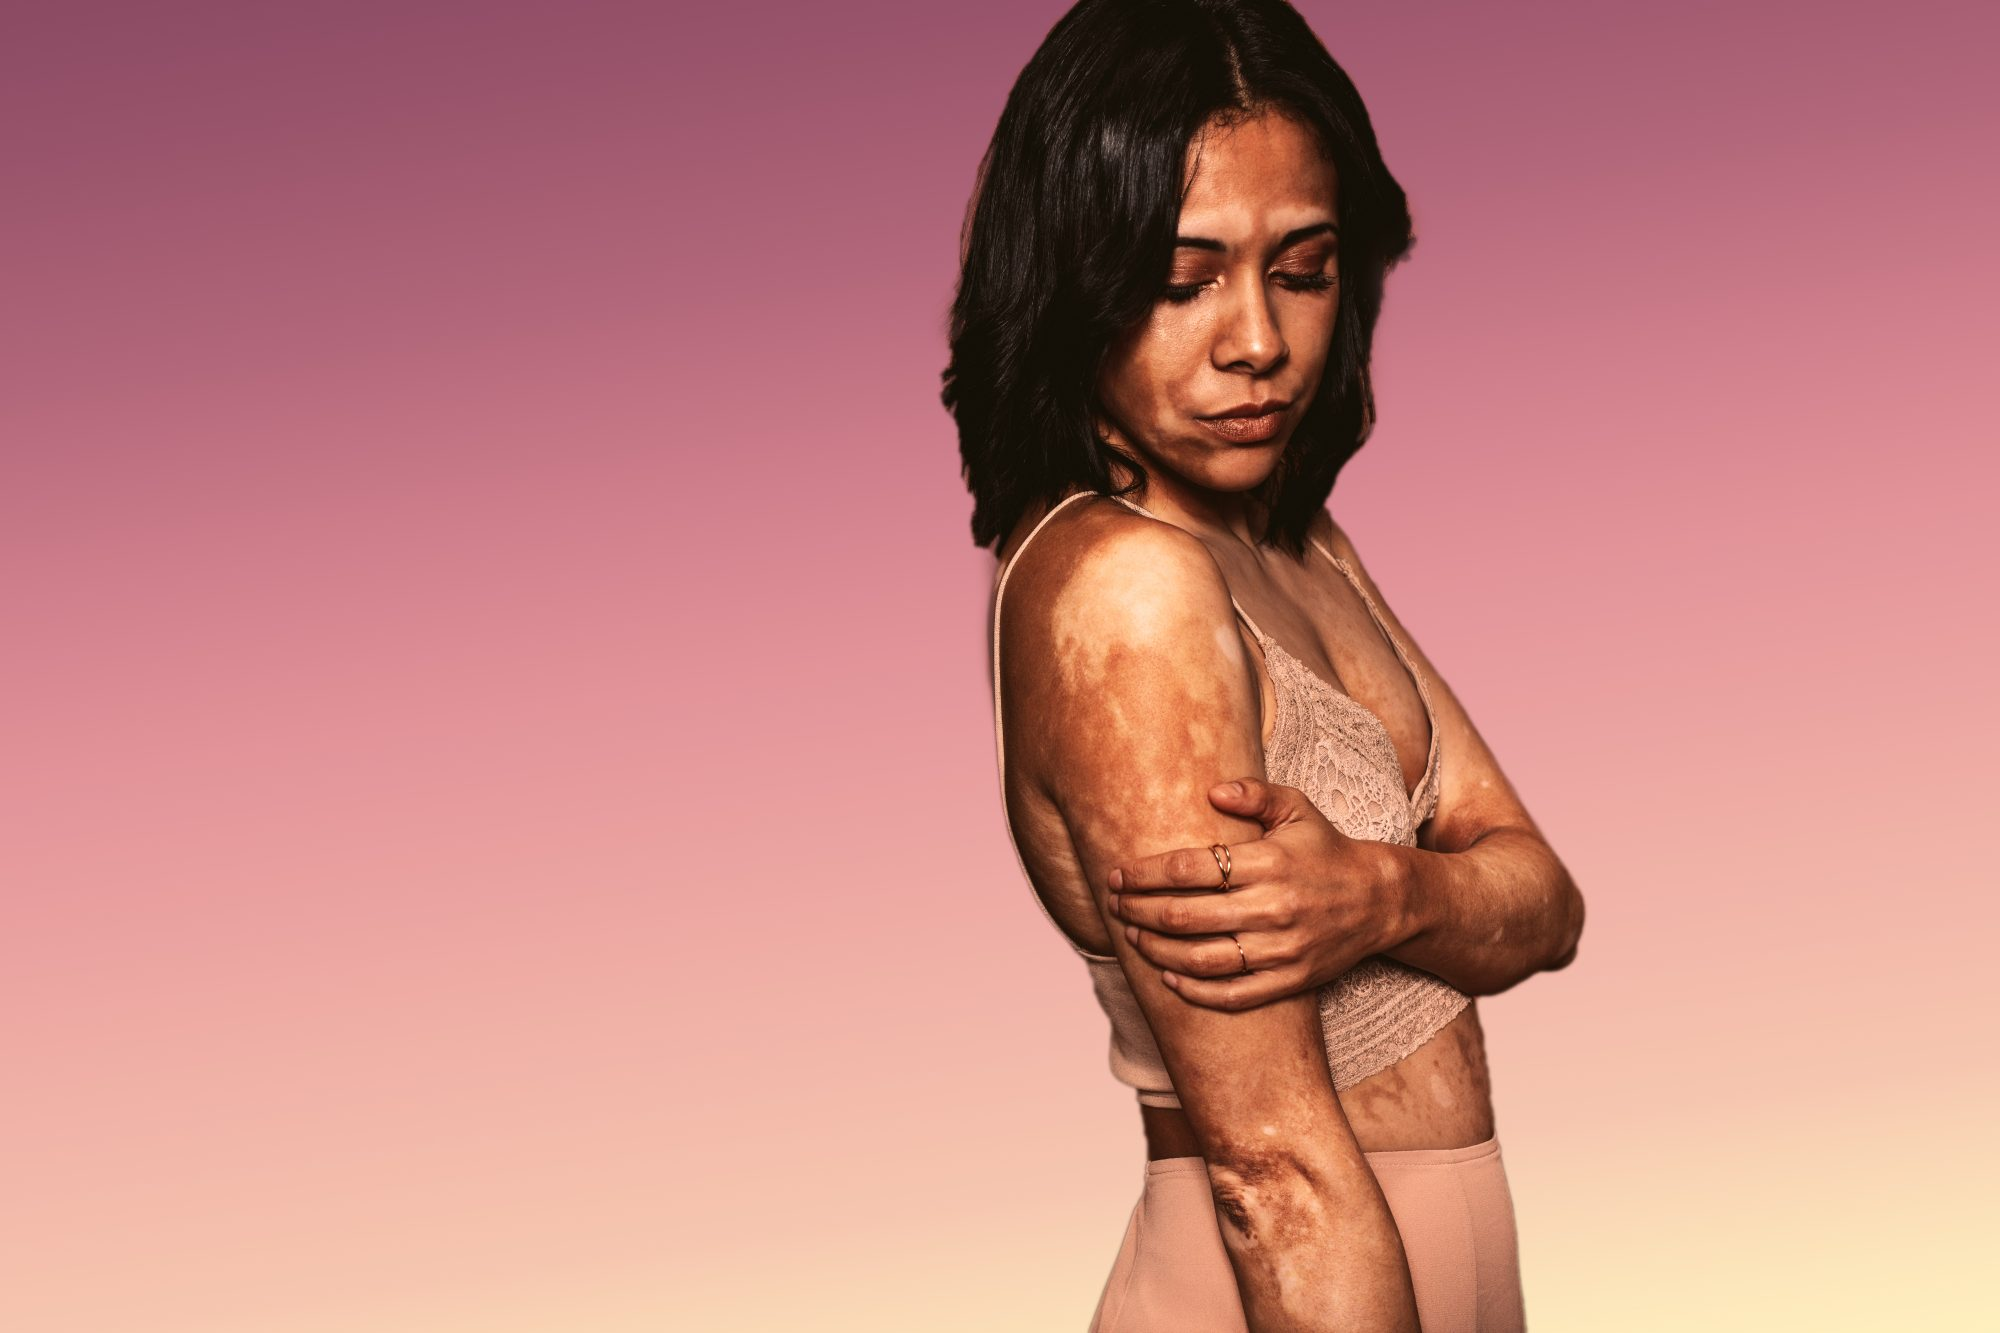 vitiligo skin condition health woman women